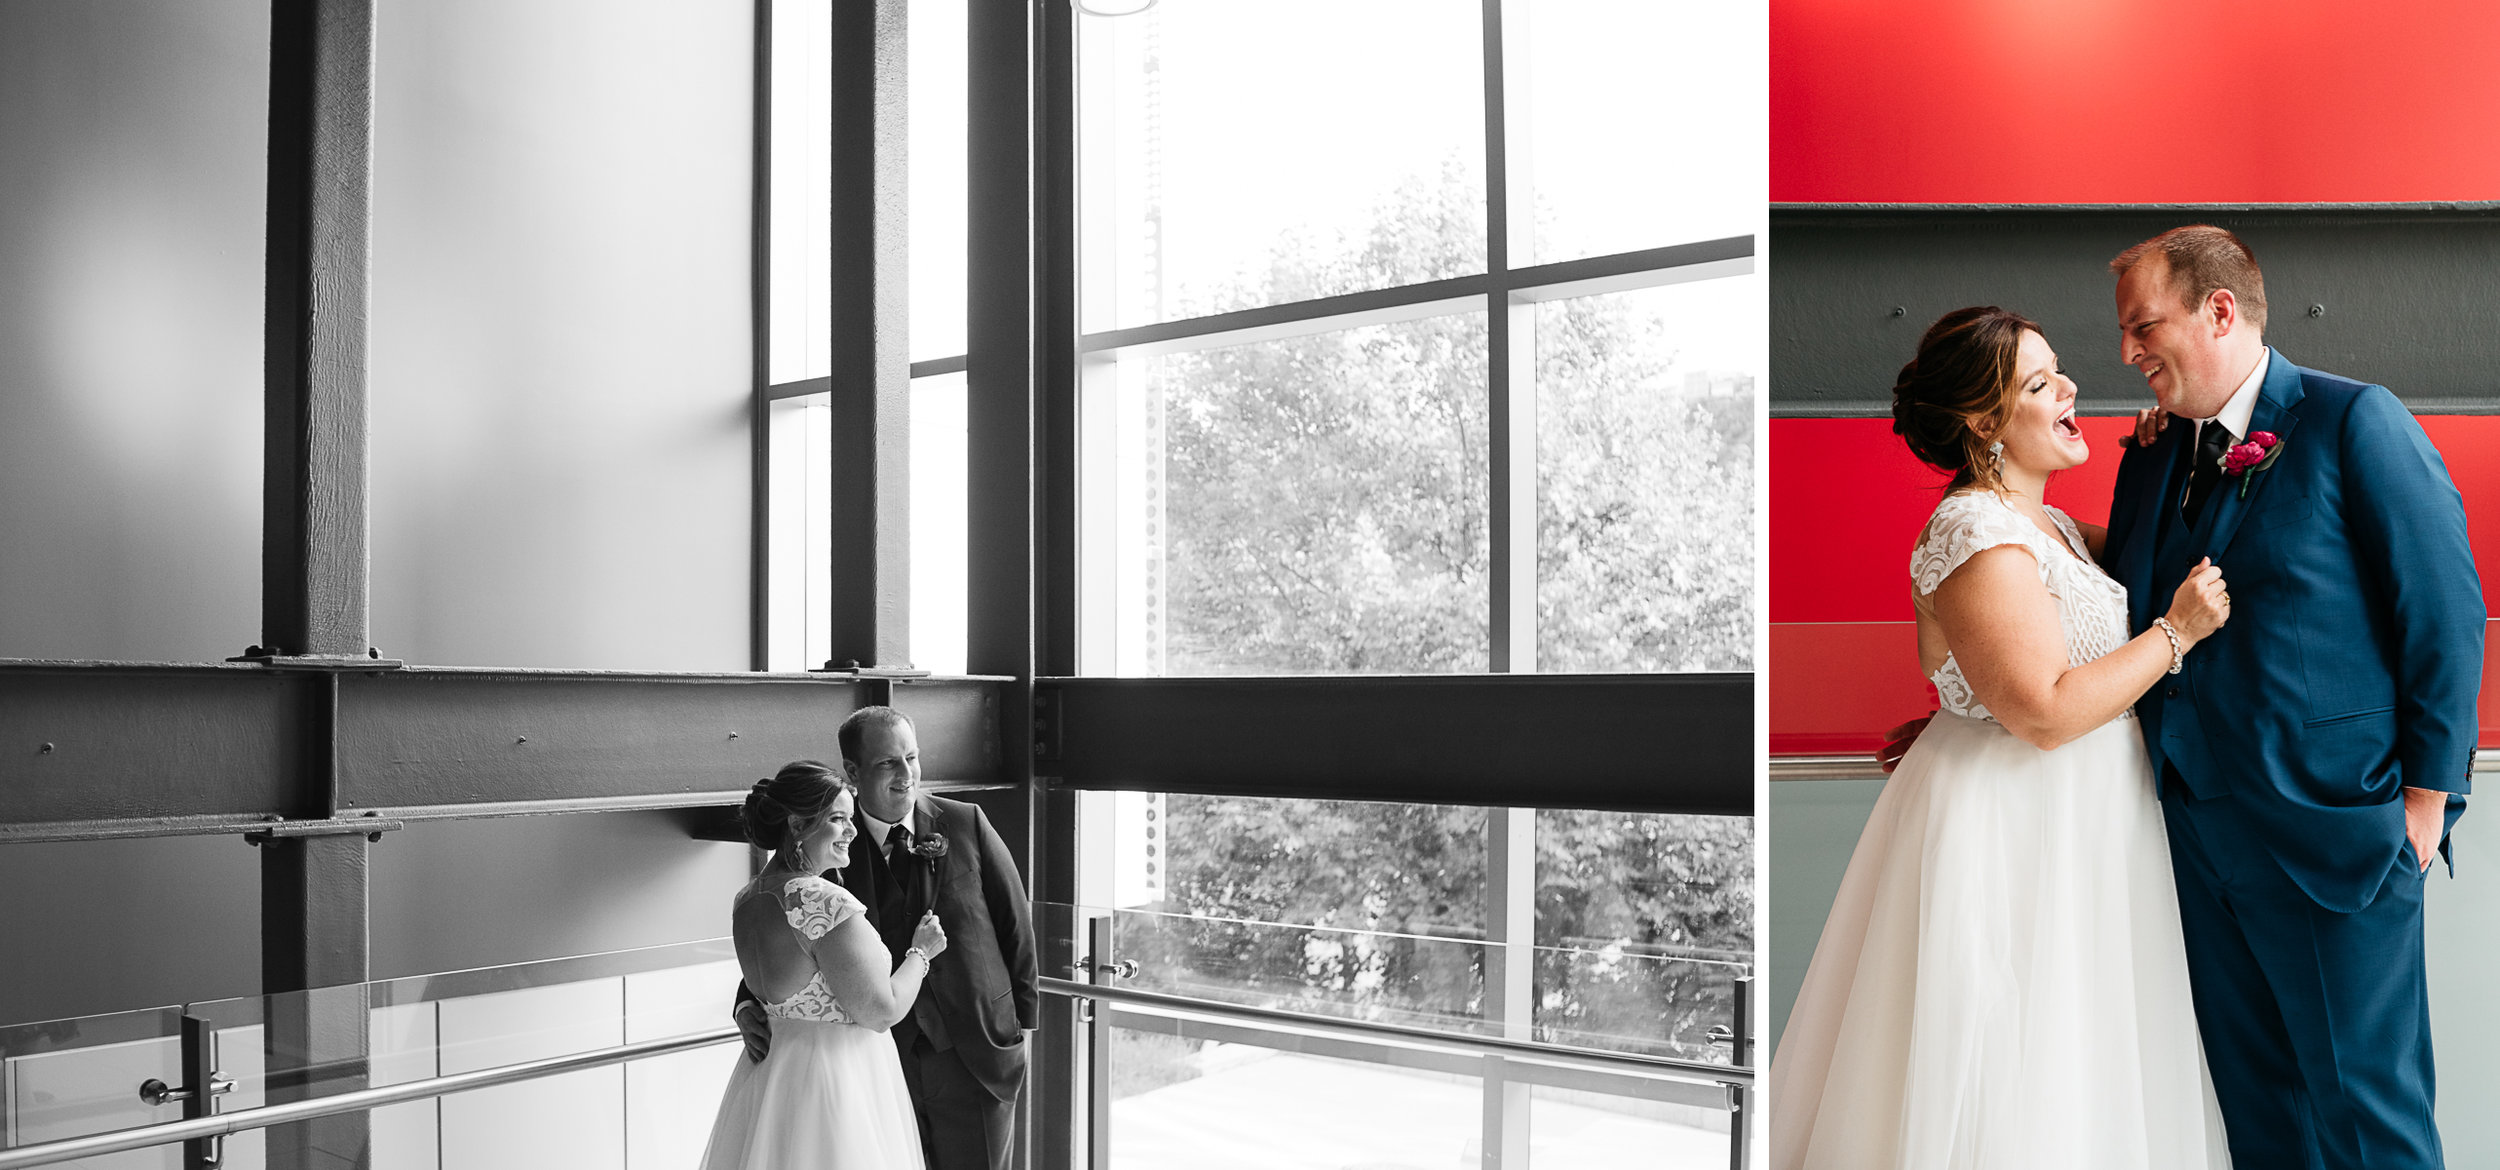 Pointview Hall, Carnegie Science Center Wedding, Pittsburgh Wedding photography, Mariah Fisher.jpg